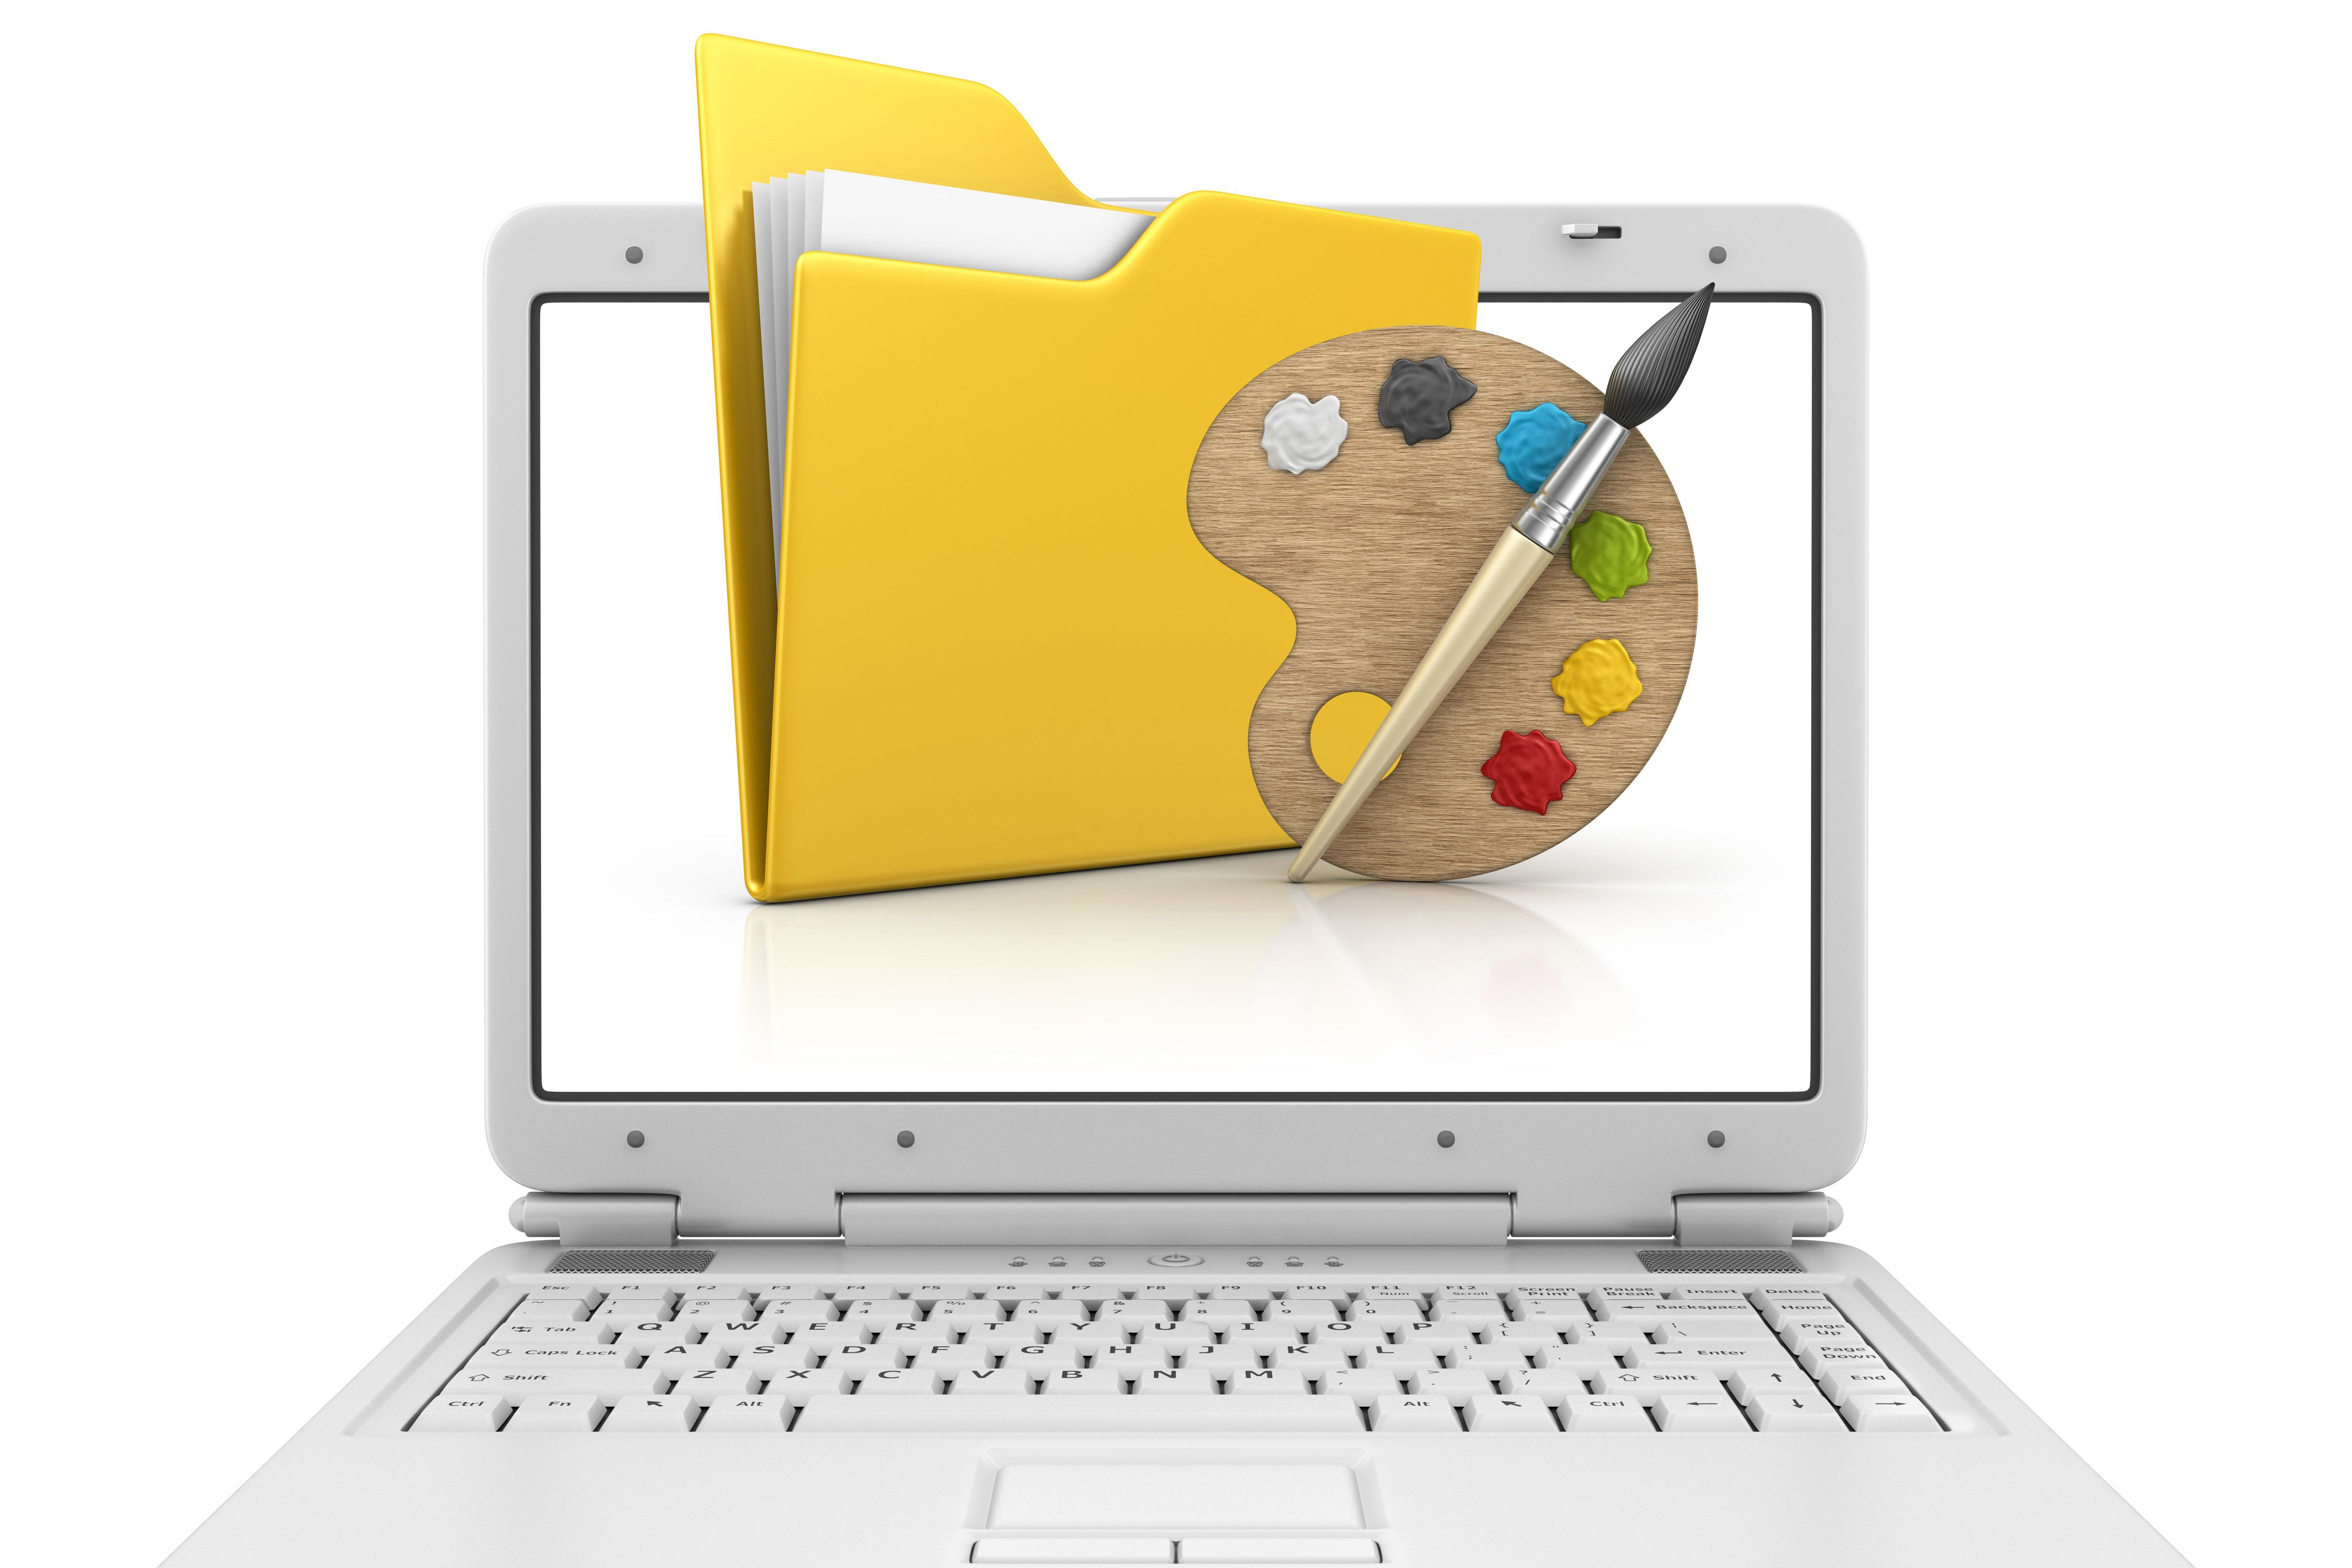 Press f clipart transparent How to Insert Pictures and Clip Art in Microsoft Word transparent